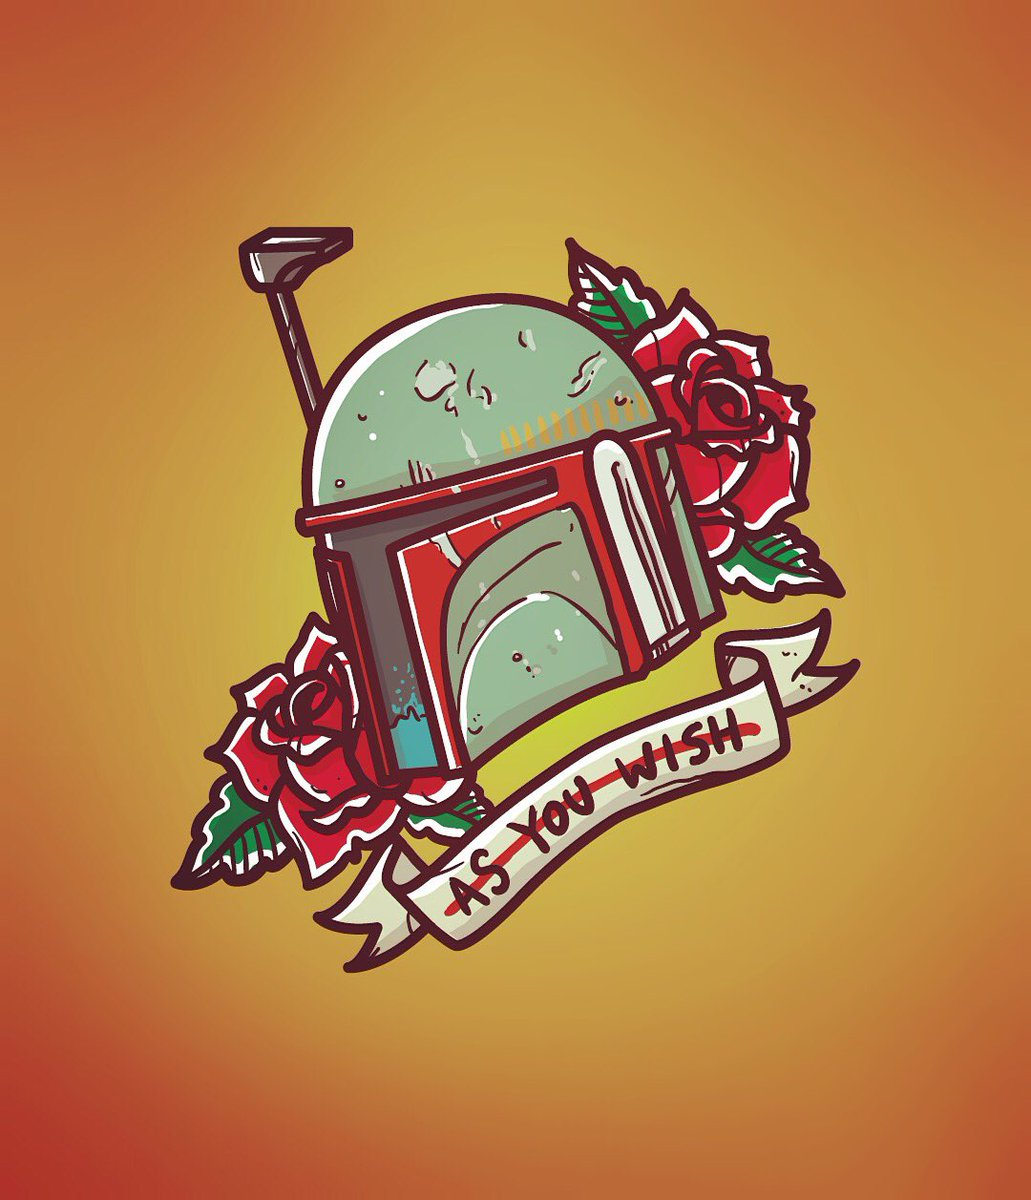 Wanted to do a Boba Fett. Did a Boba Fett. #tattoo #illustration #flash https://t.co/nbC7DbuAdR